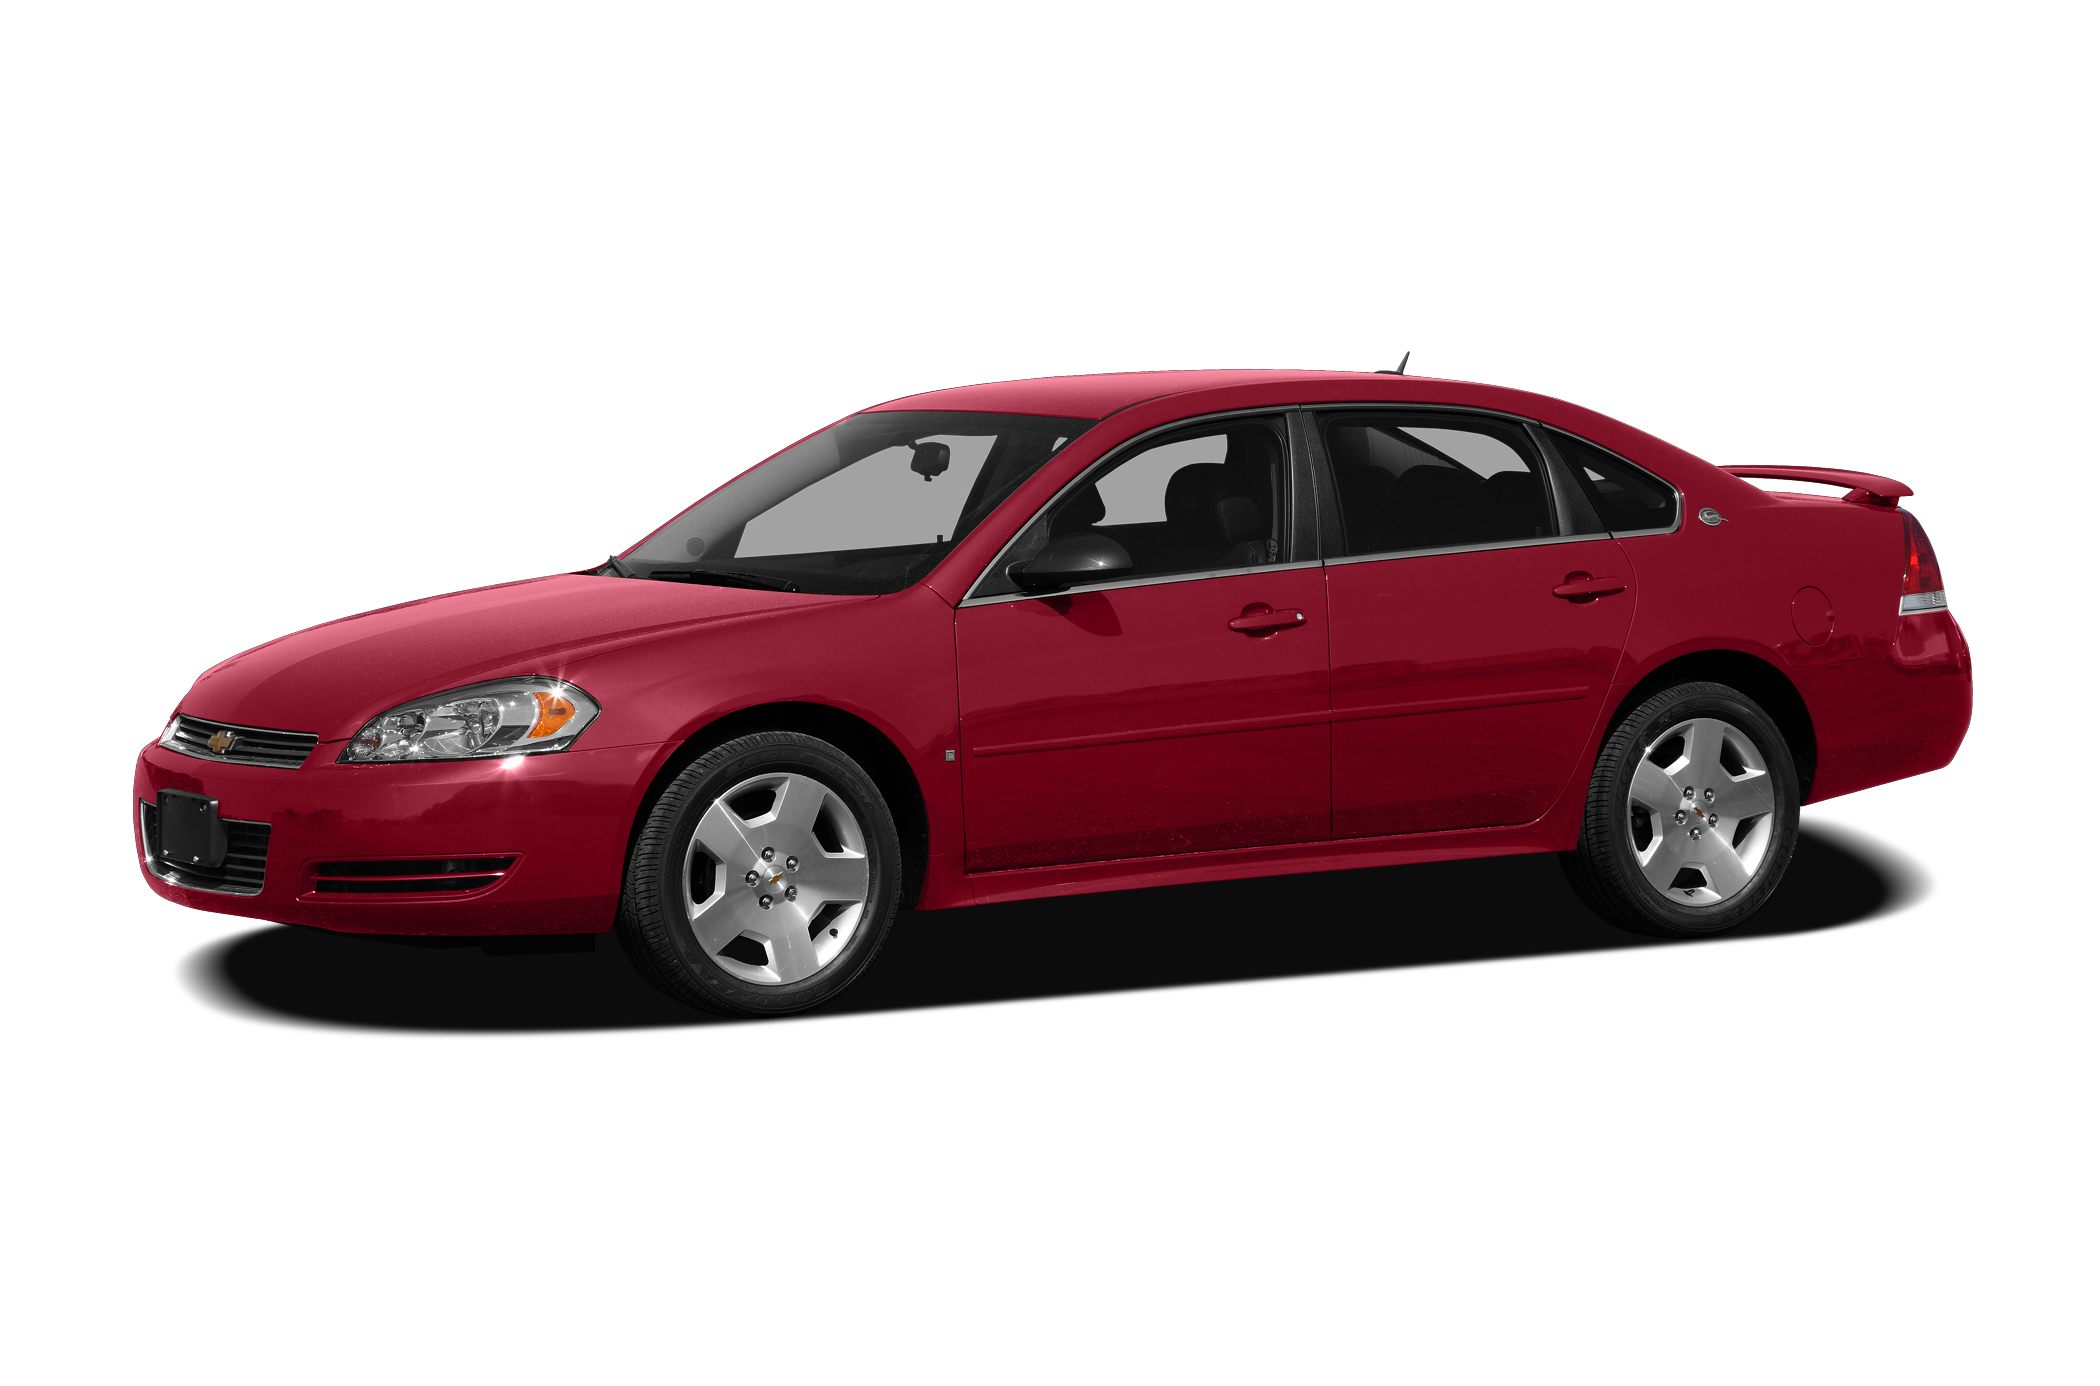 CAB80CHC131E0101 Cool Review About 2004 Chevy Impala Gas Mileage with Exciting Photos Cars Review